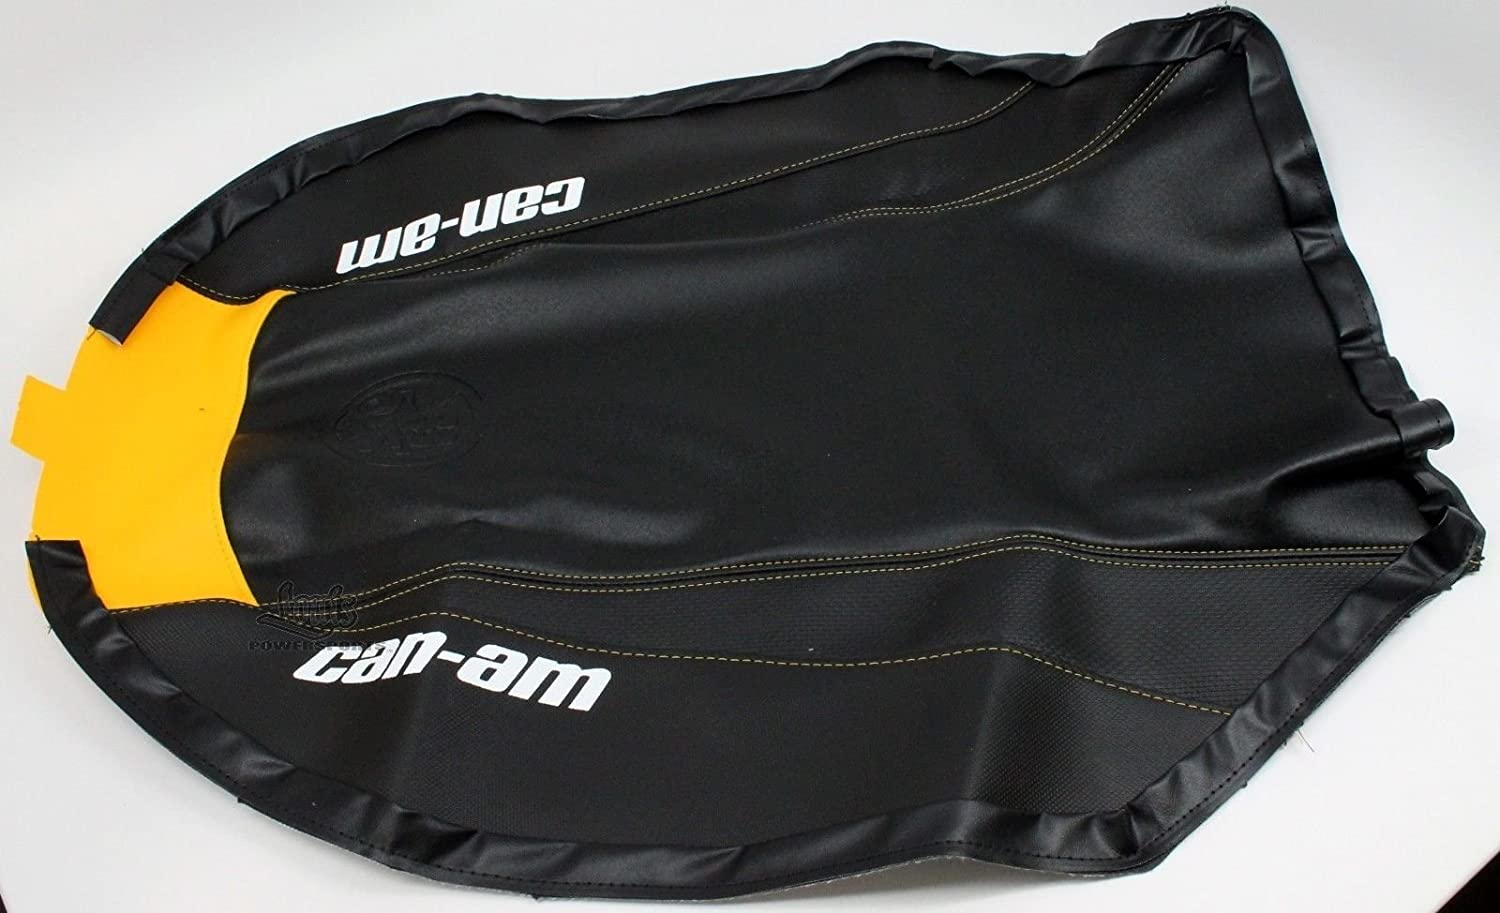 Bombardier Outlander 330 400 new seat cover 2003-13 can am out lander canam 381